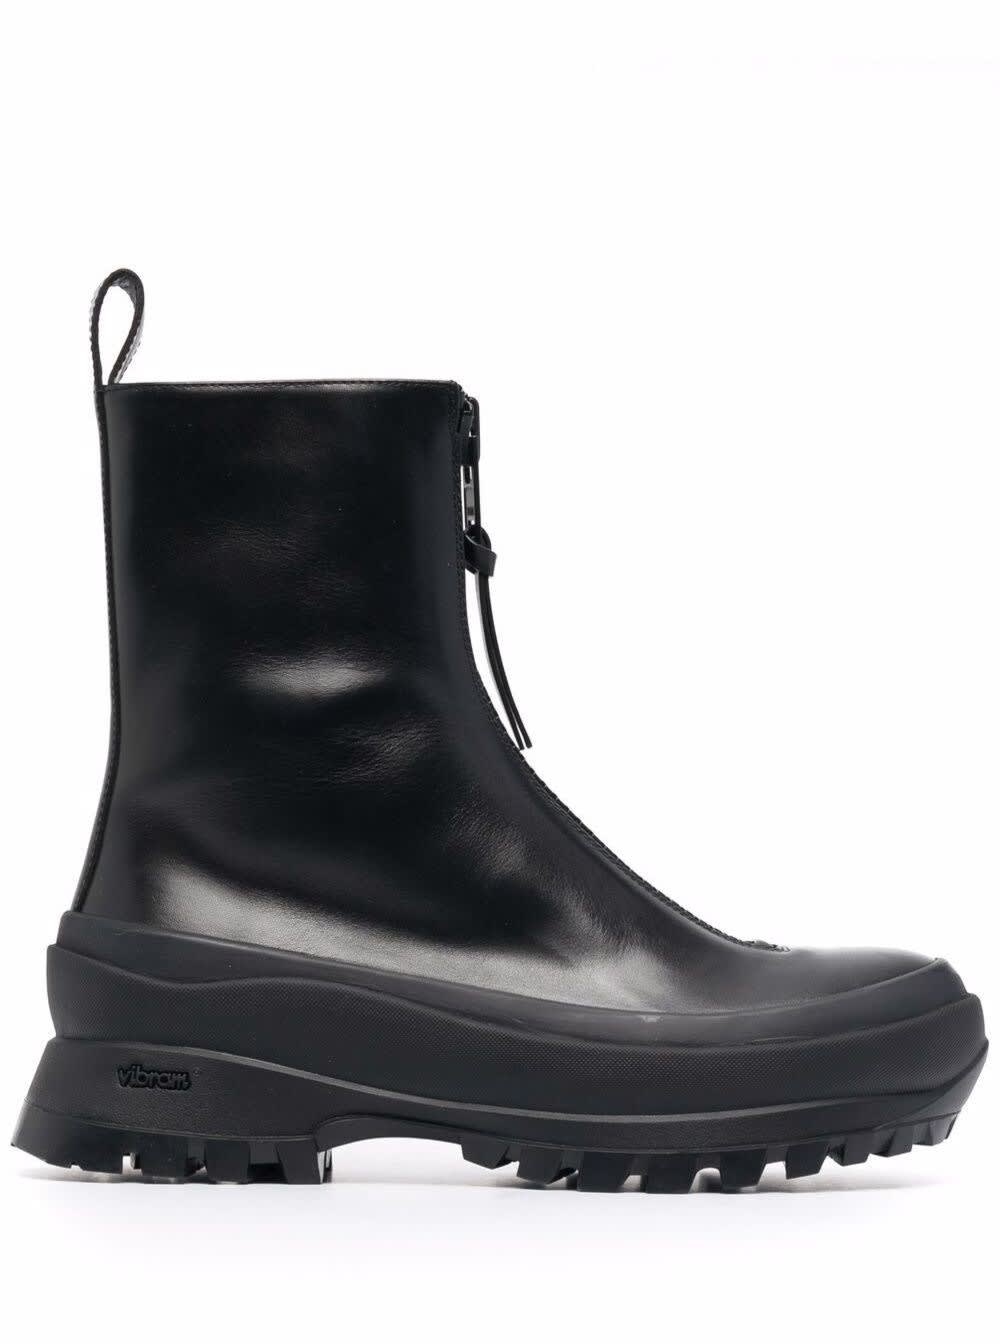 Buy Jil Sander Boston Boots In Black Leather online, shop Jil Sander shoes with free shipping